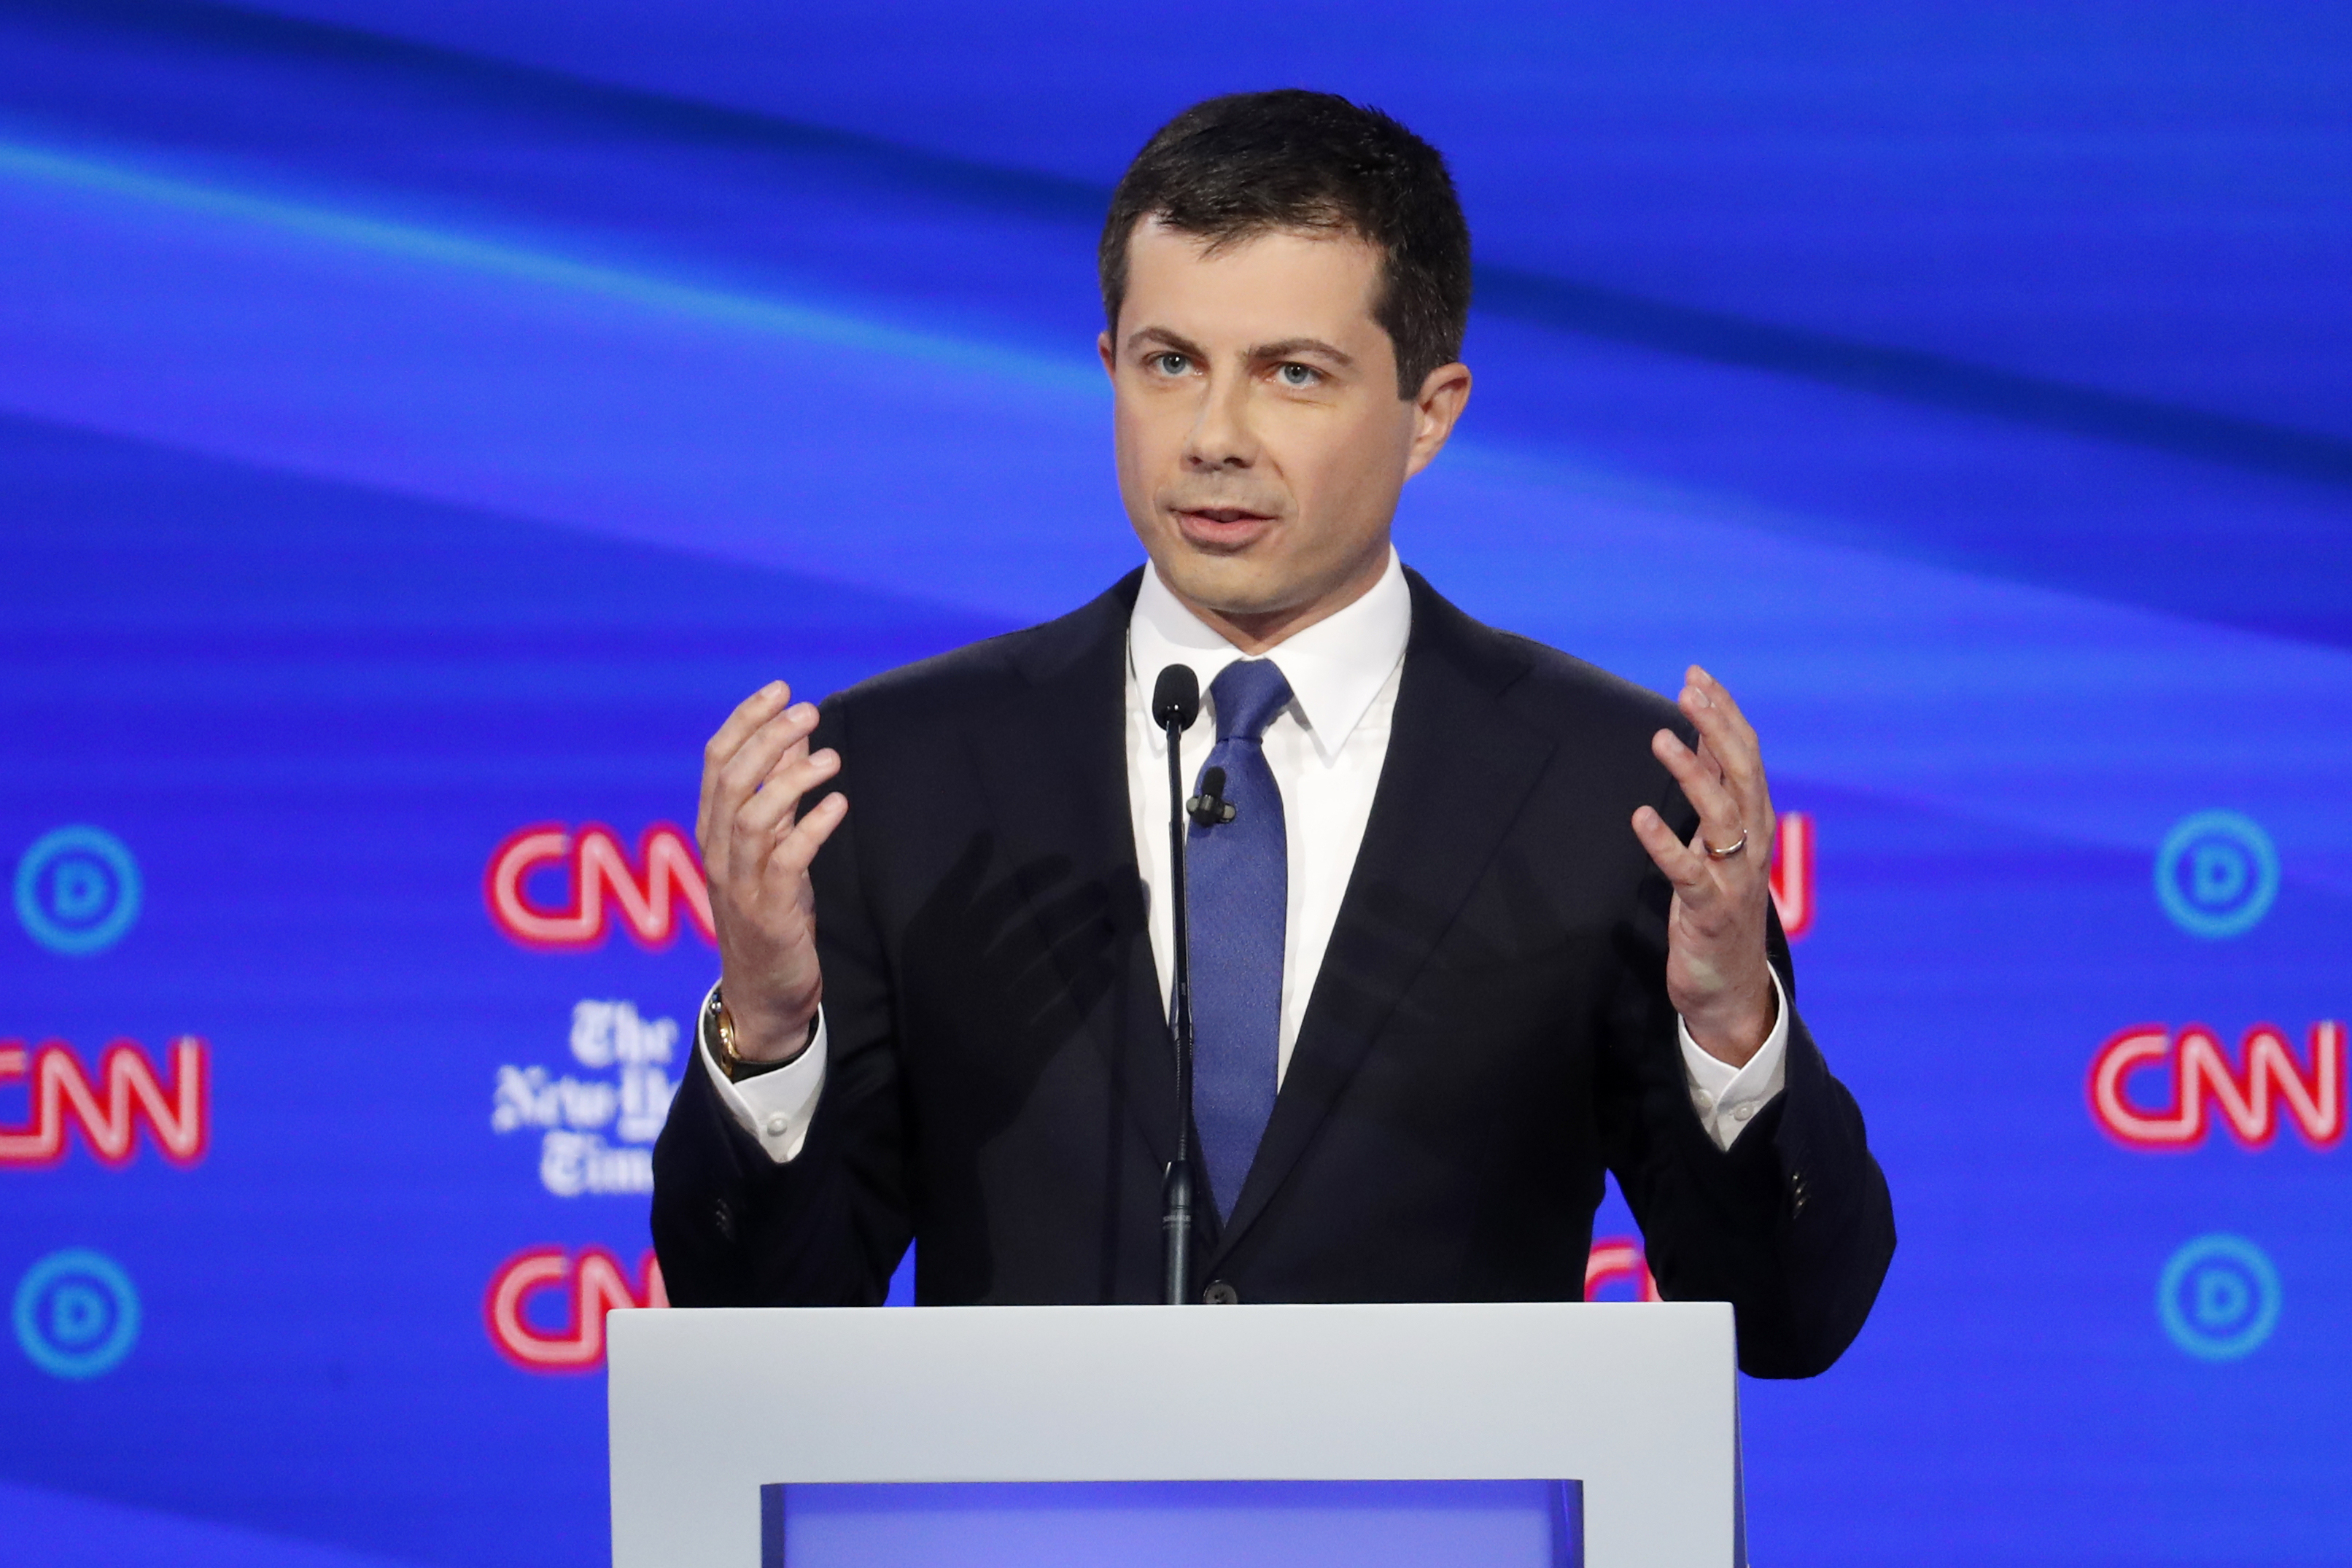 Can Pete Buttigieg, cool and cerebral, second that emotion?